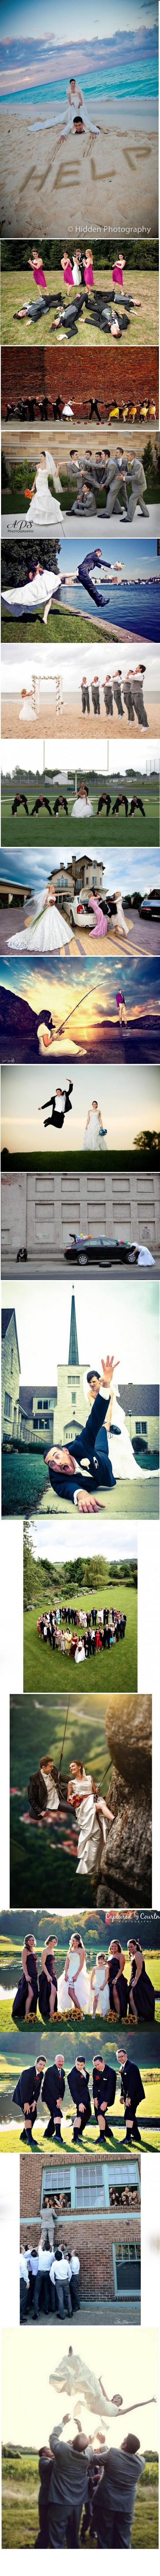 Funny weddings photo strip picture